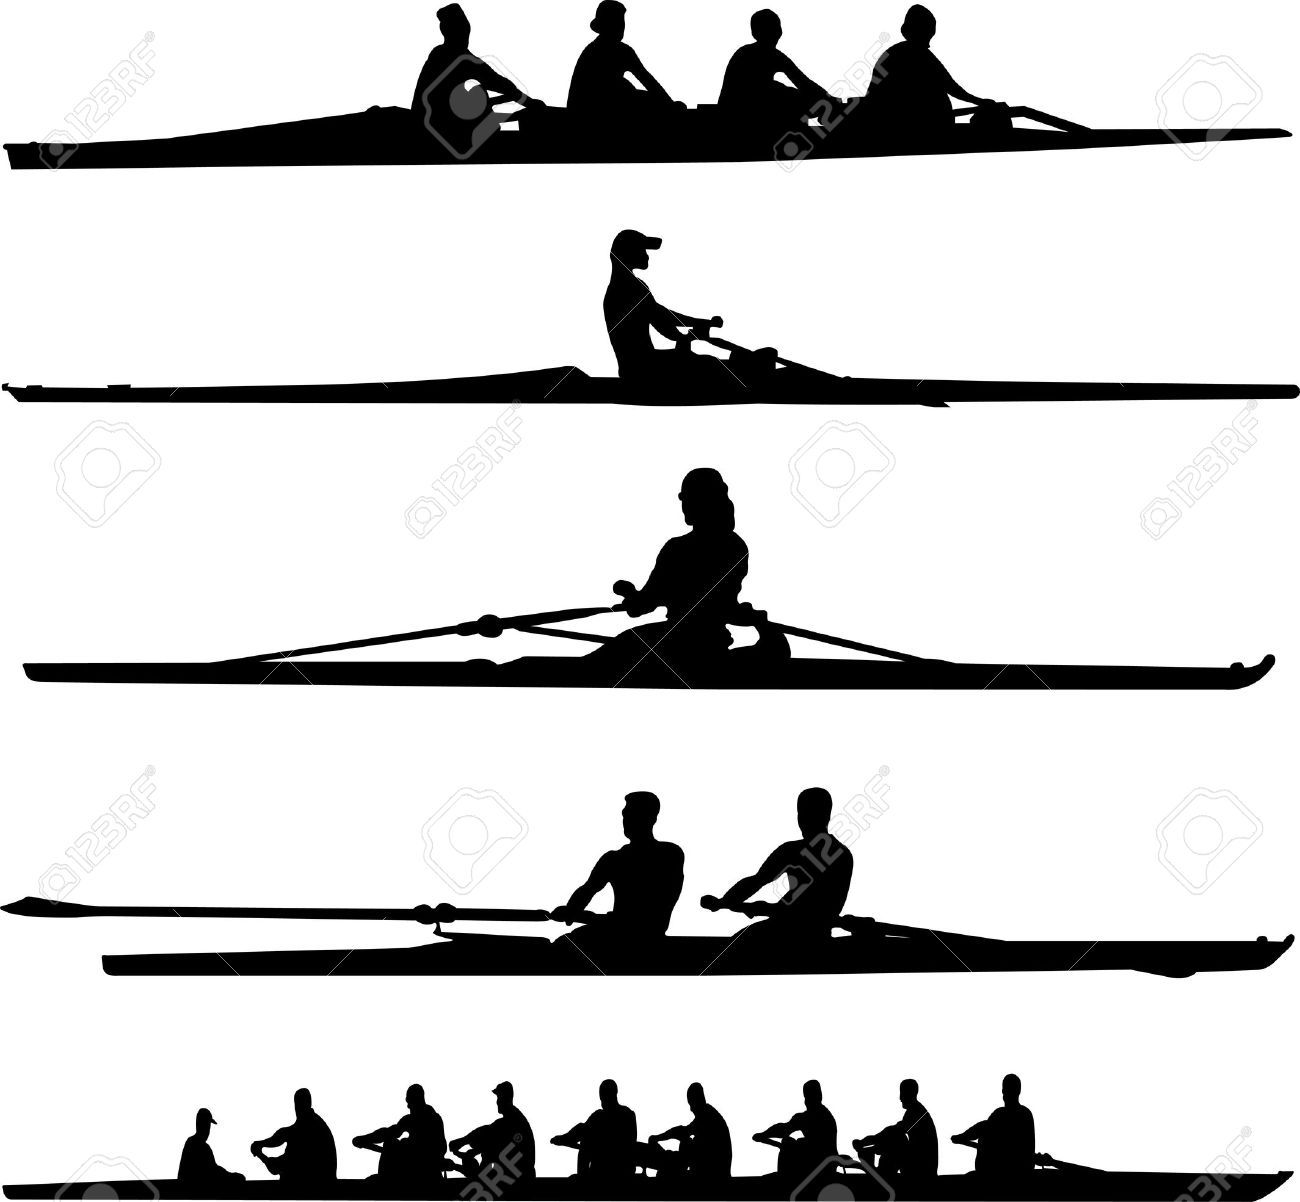 Rowing shell clipart banner free download Rowing shell clipart » Clipart Portal banner free download